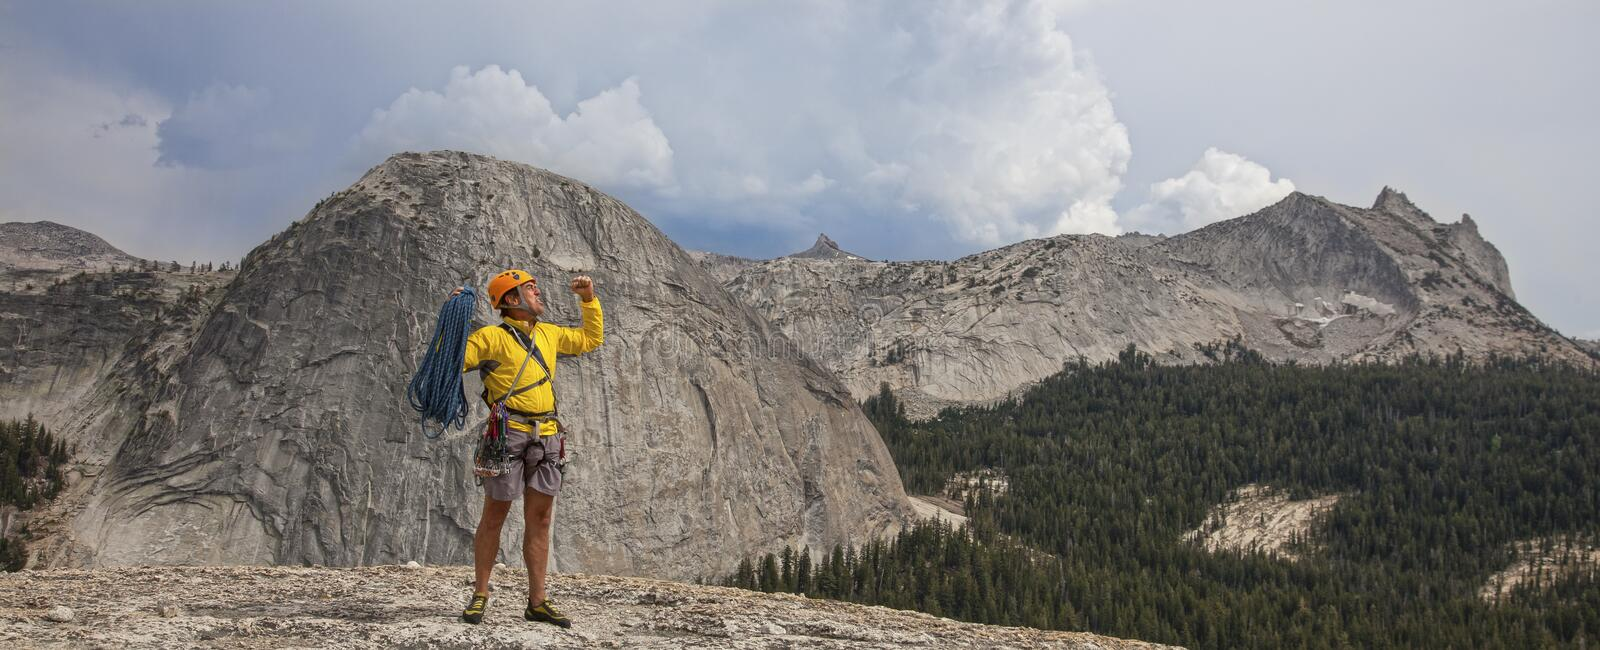 Climber celebrates on the summit. royalty free stock images